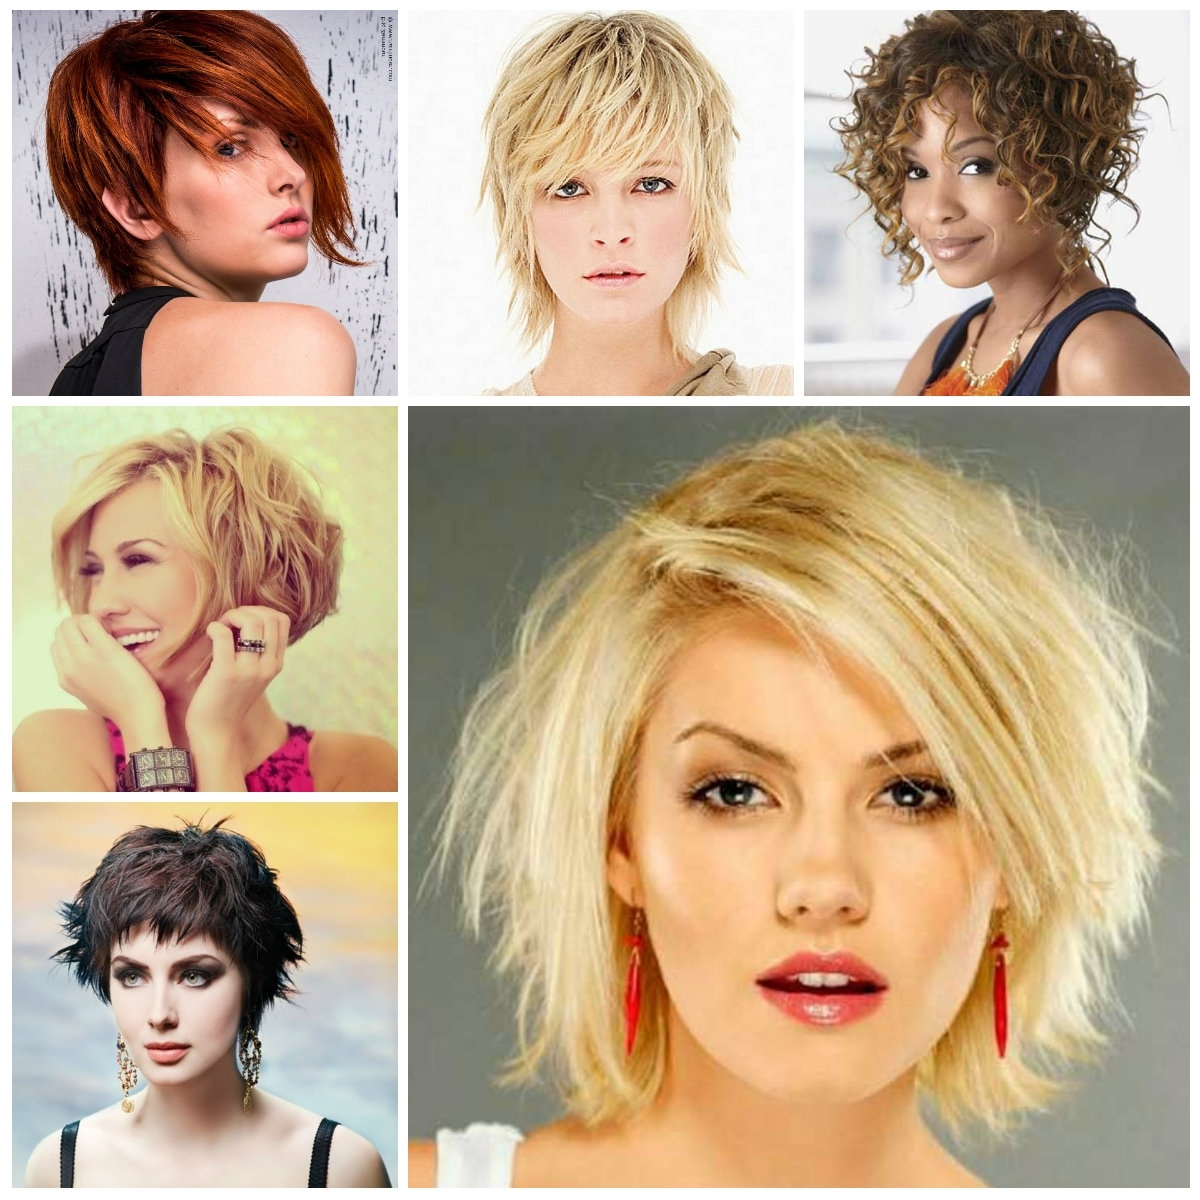 New Haircuts To Try For 2018 For Current Shaggy Messy Hairstyles (View 11 of 15)